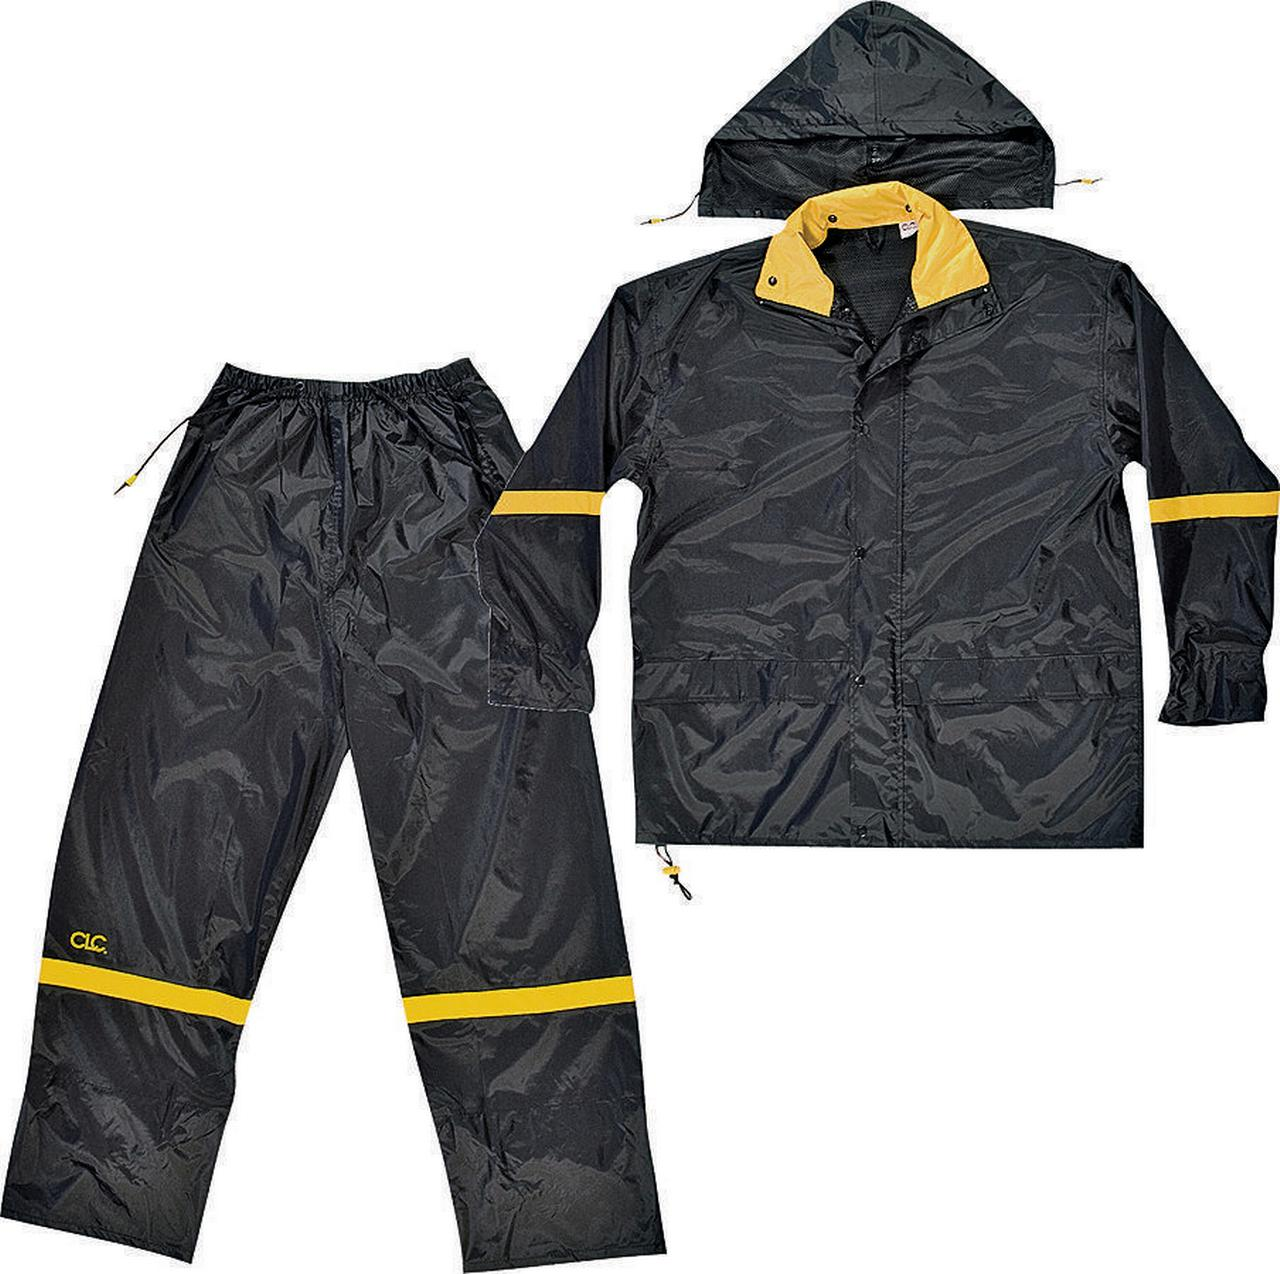 Custom Leathercraft Large Black Nylon Rain Suit Set, 3pk by Custom Leathercraft